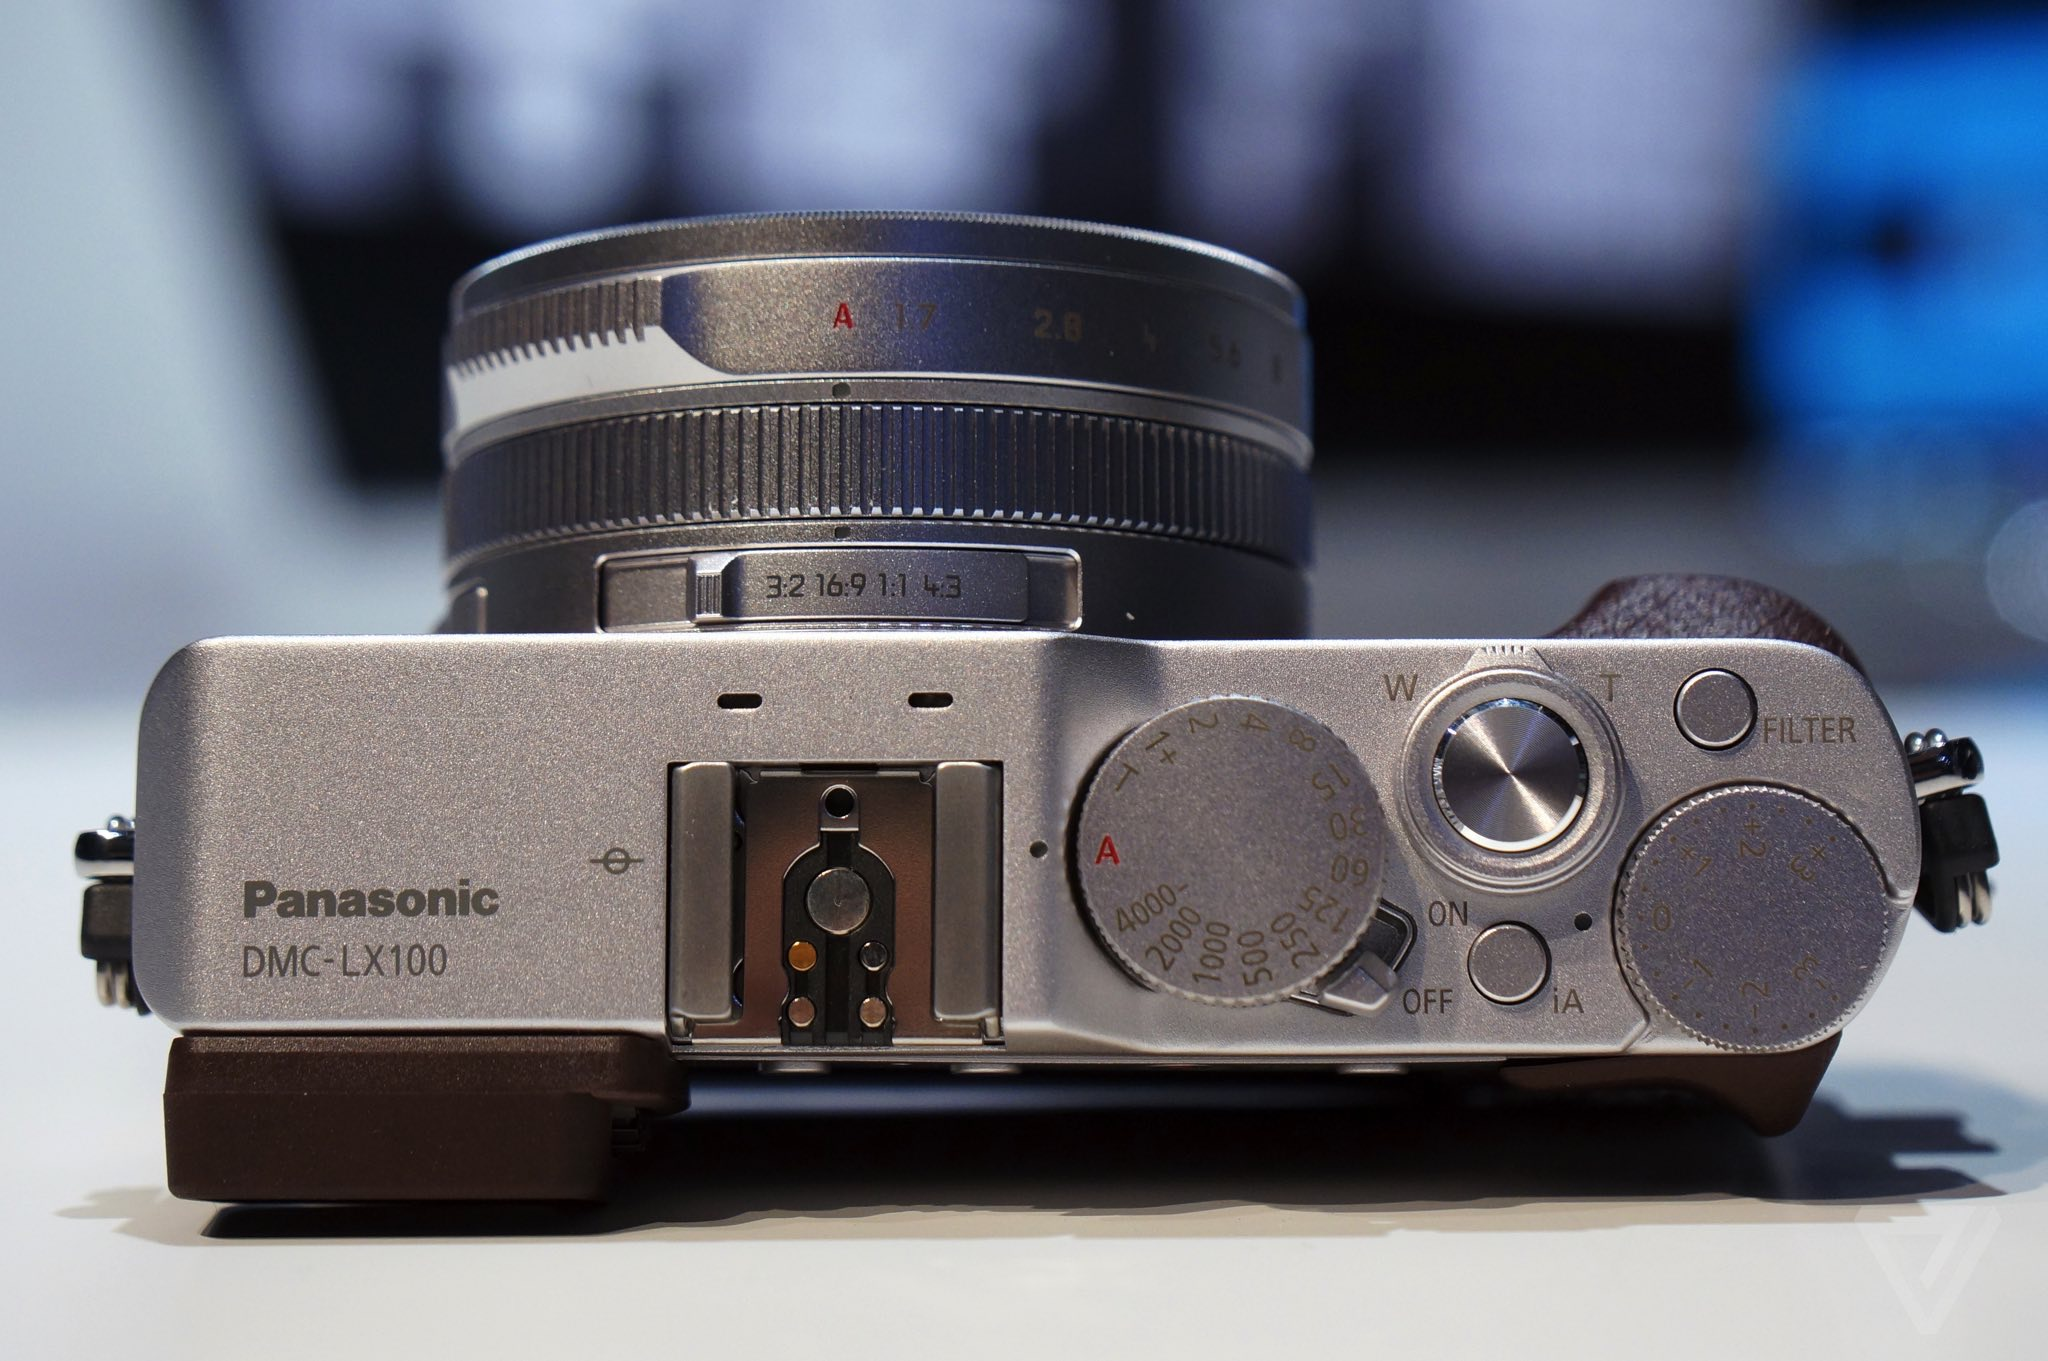 Panasonic's LX100 camera isn't quite as lovely as it looks - The Verge